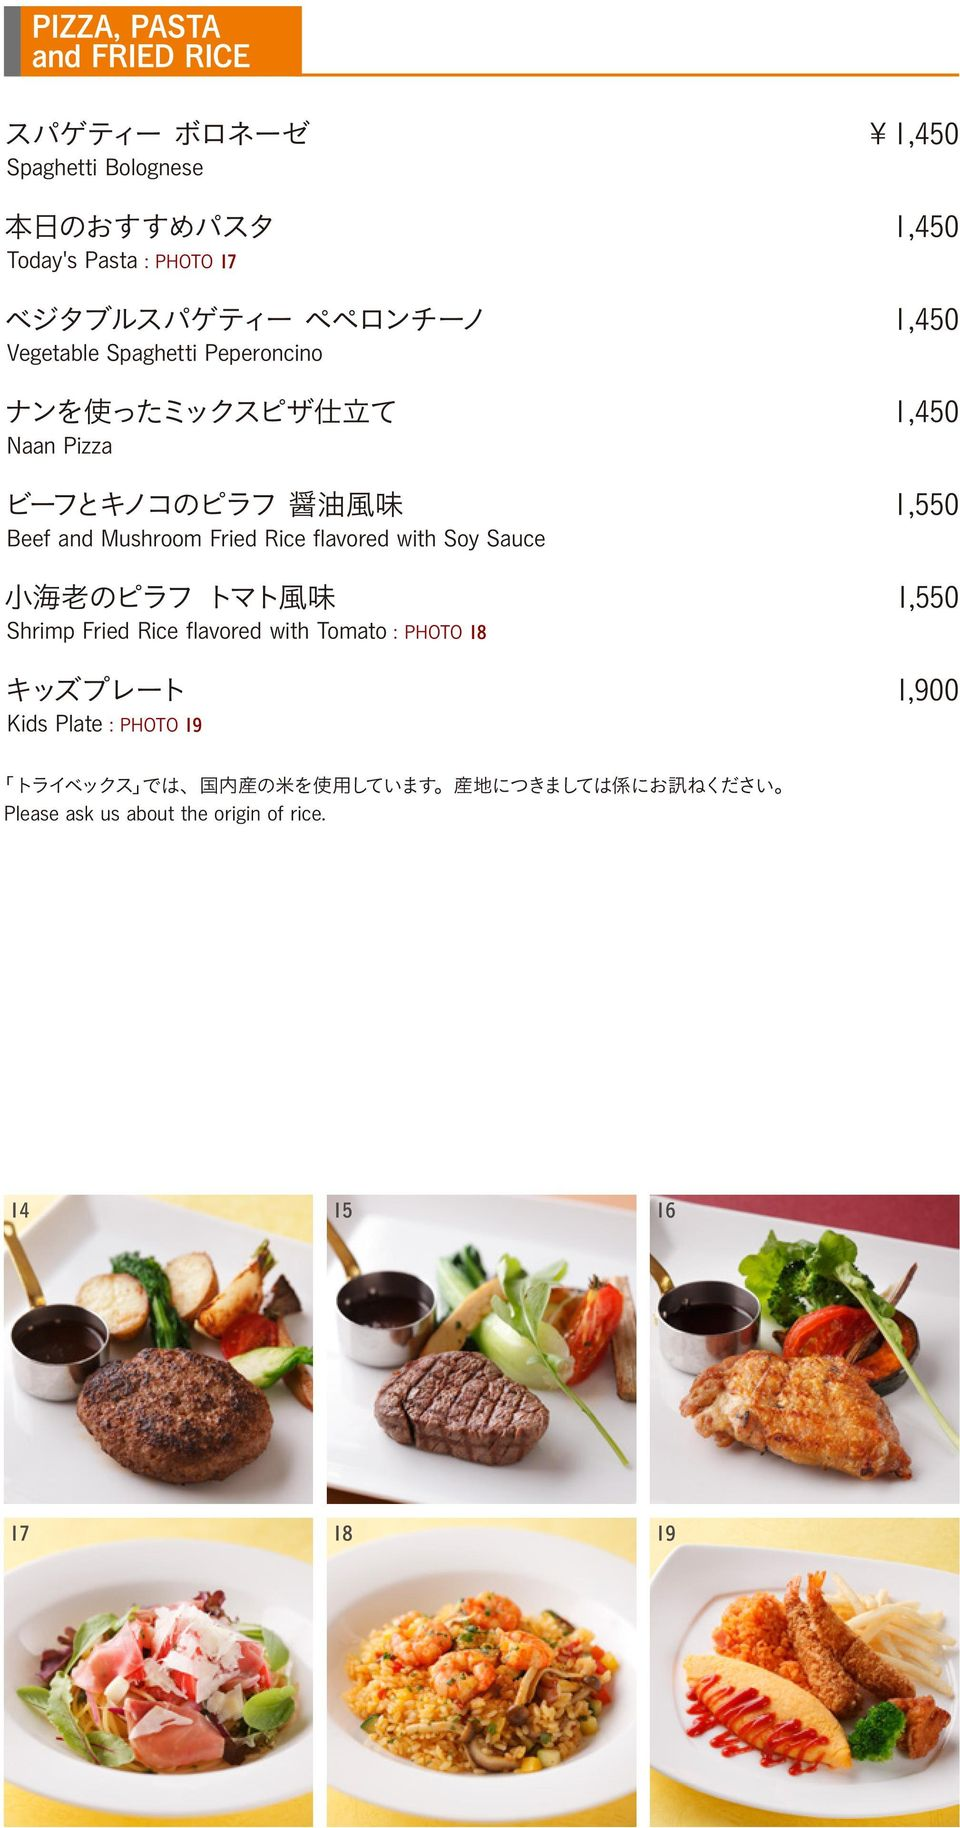 ......................................... 1,550 Beef and Mushroom Fried Rice flavored with Soy Sauce 小 海 老 のピラフ トマト 風 味................................................ 1,550 Shrimp Fried Rice flavored with Tomato : PHOTO 18 キッズプレート.